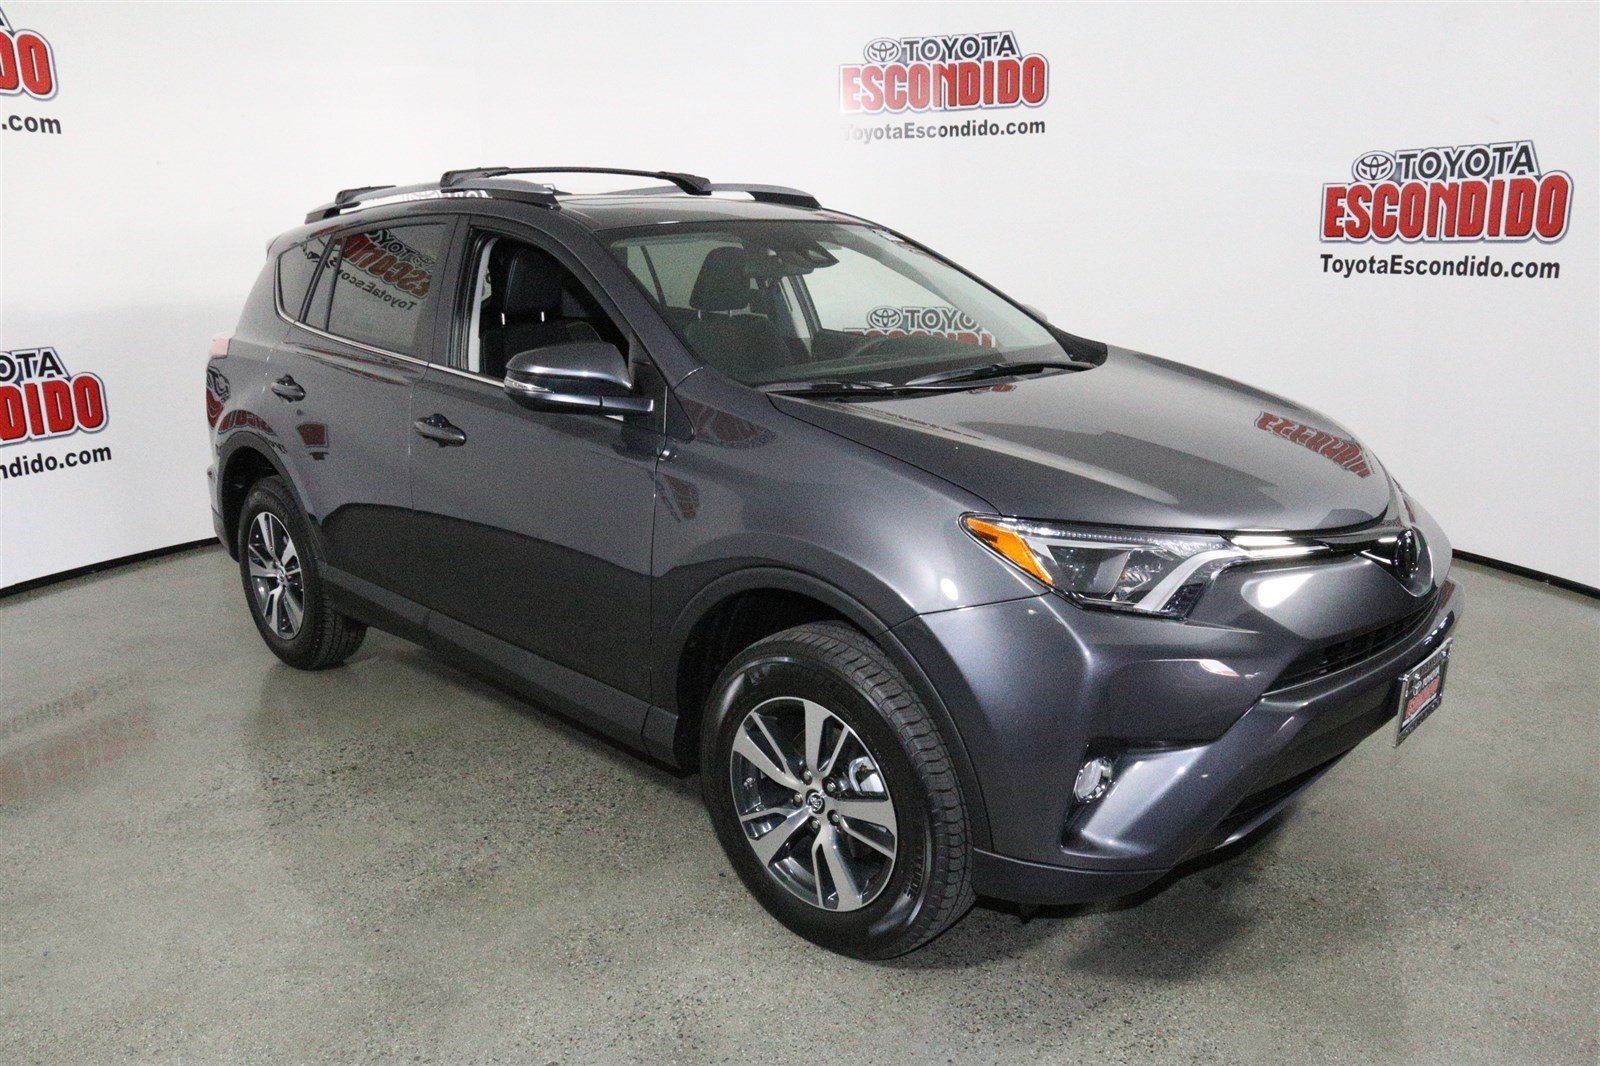 new 2017 toyota rav4 xle sport utility in escondido hj115397 toyota of escondido. Black Bedroom Furniture Sets. Home Design Ideas